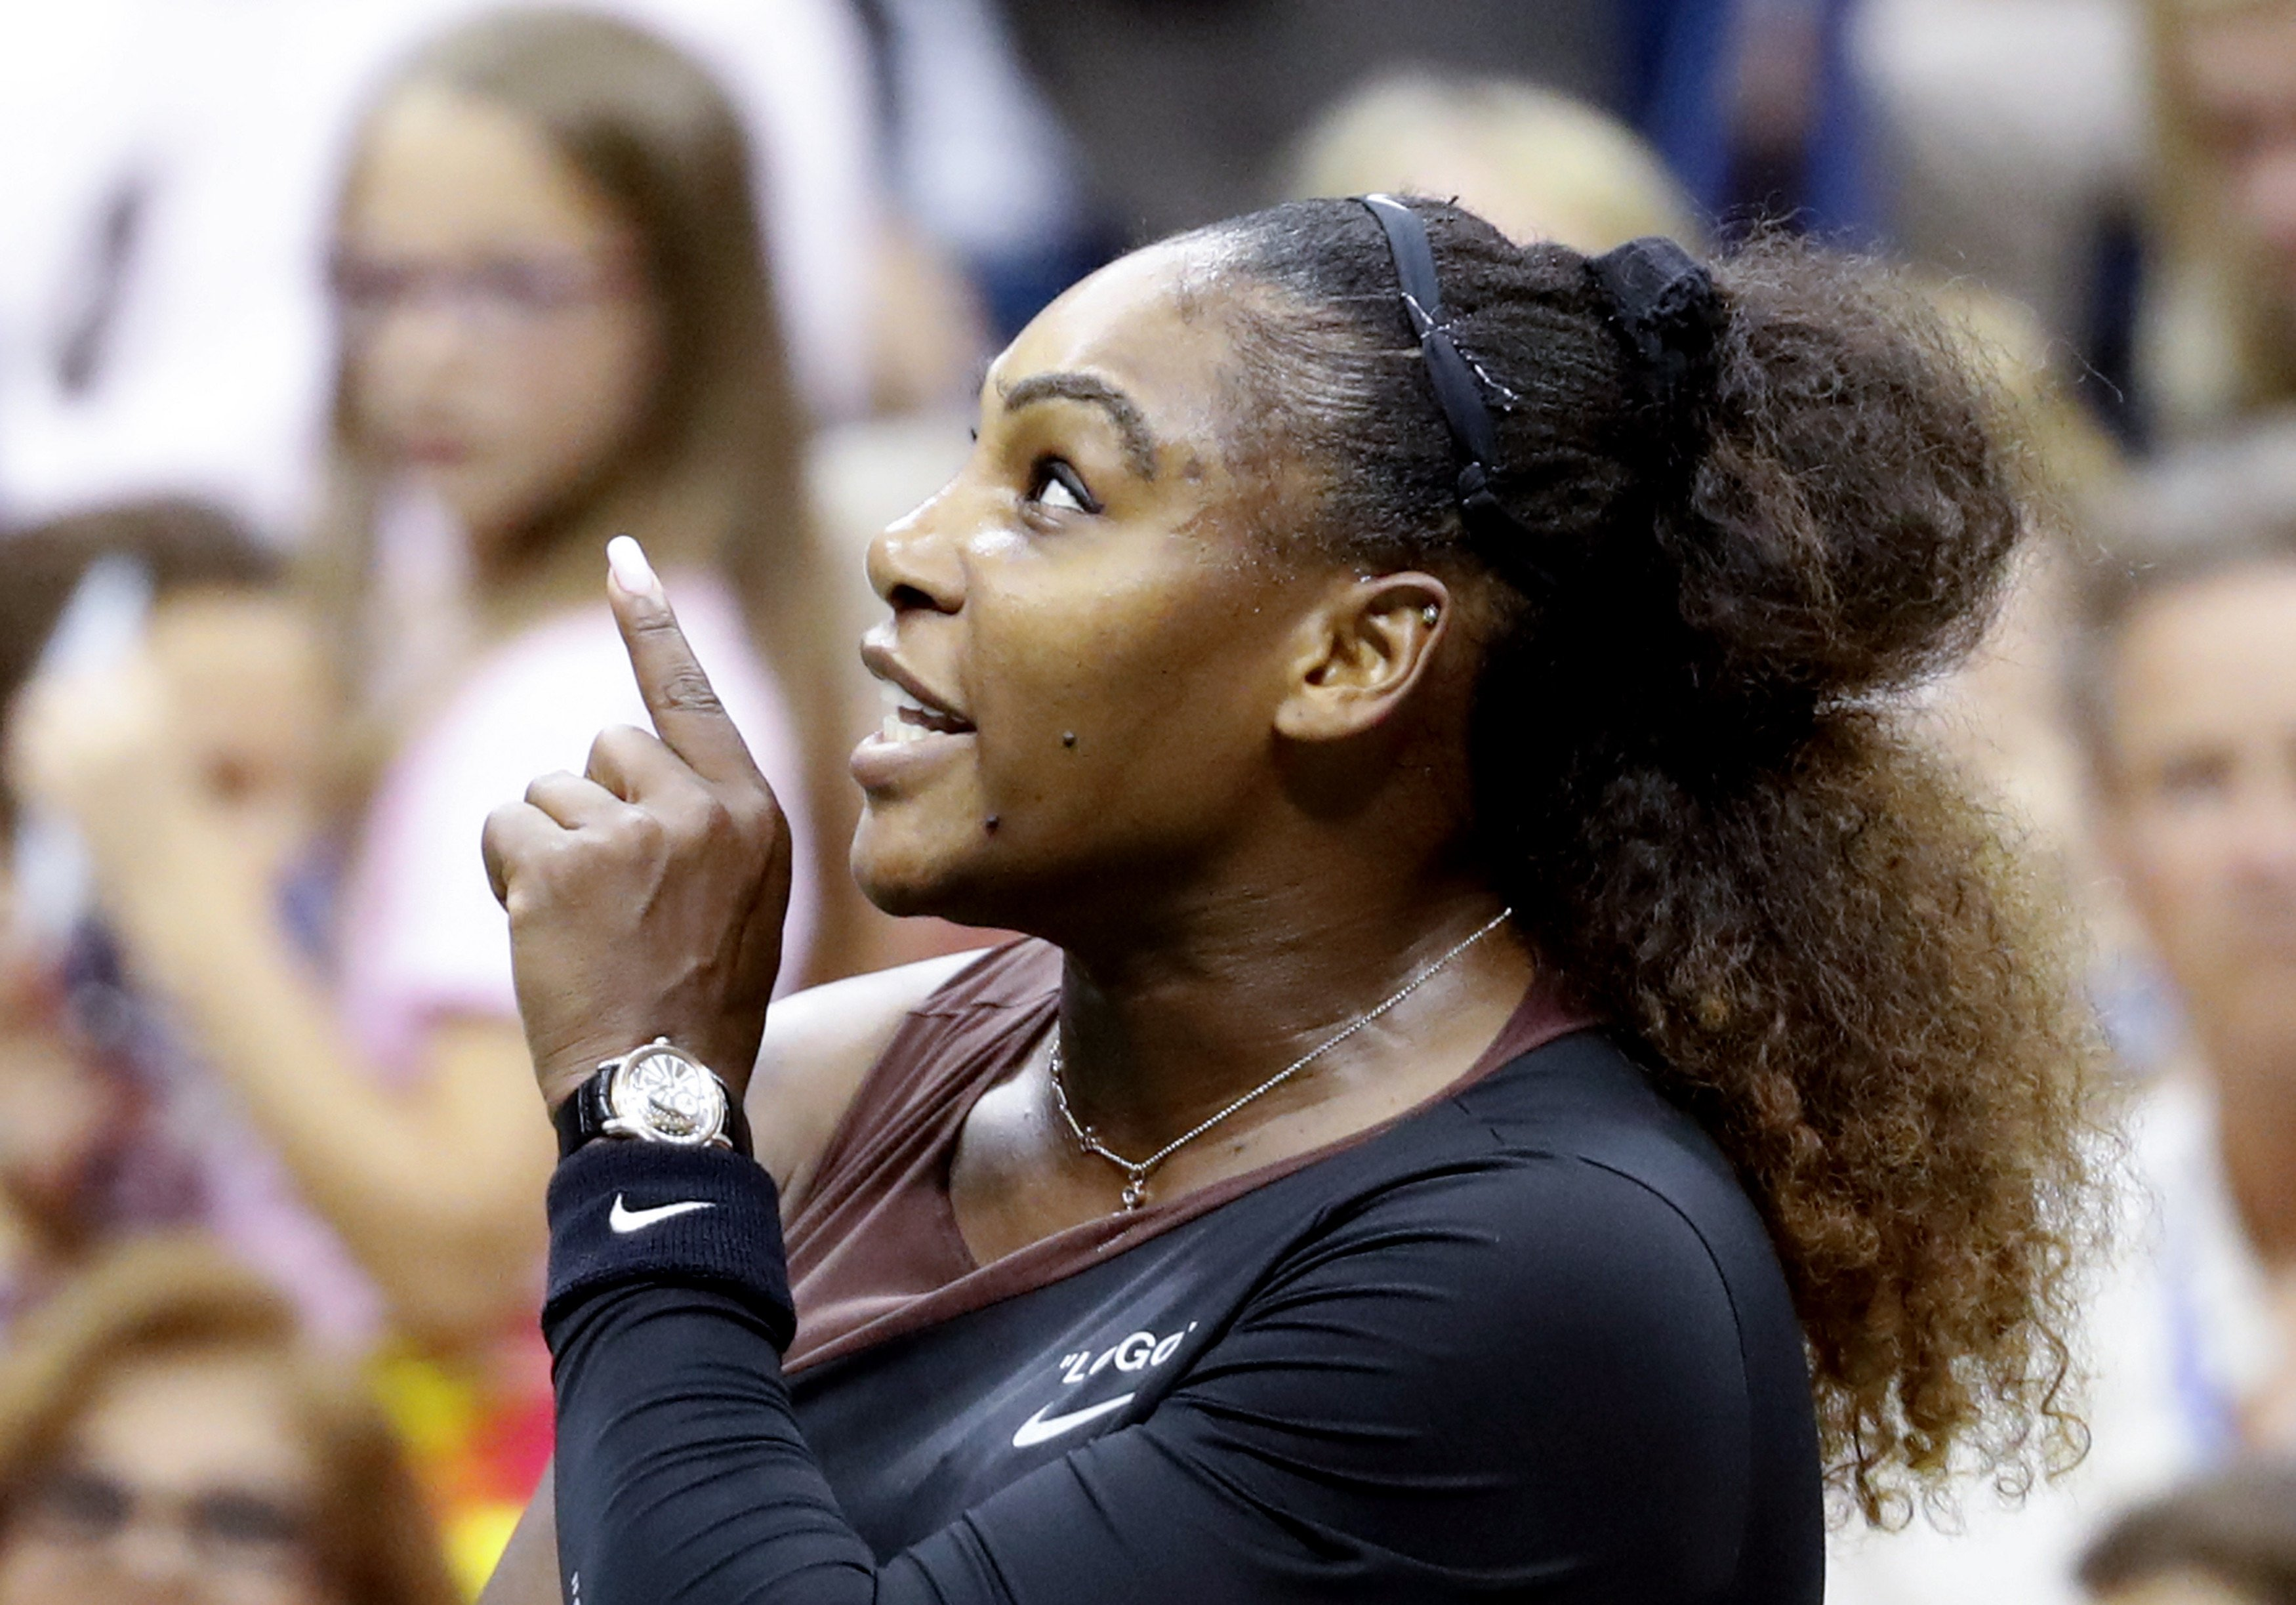 Serena Williams' US Open smashed racket sells for nearly $21,000 at auction